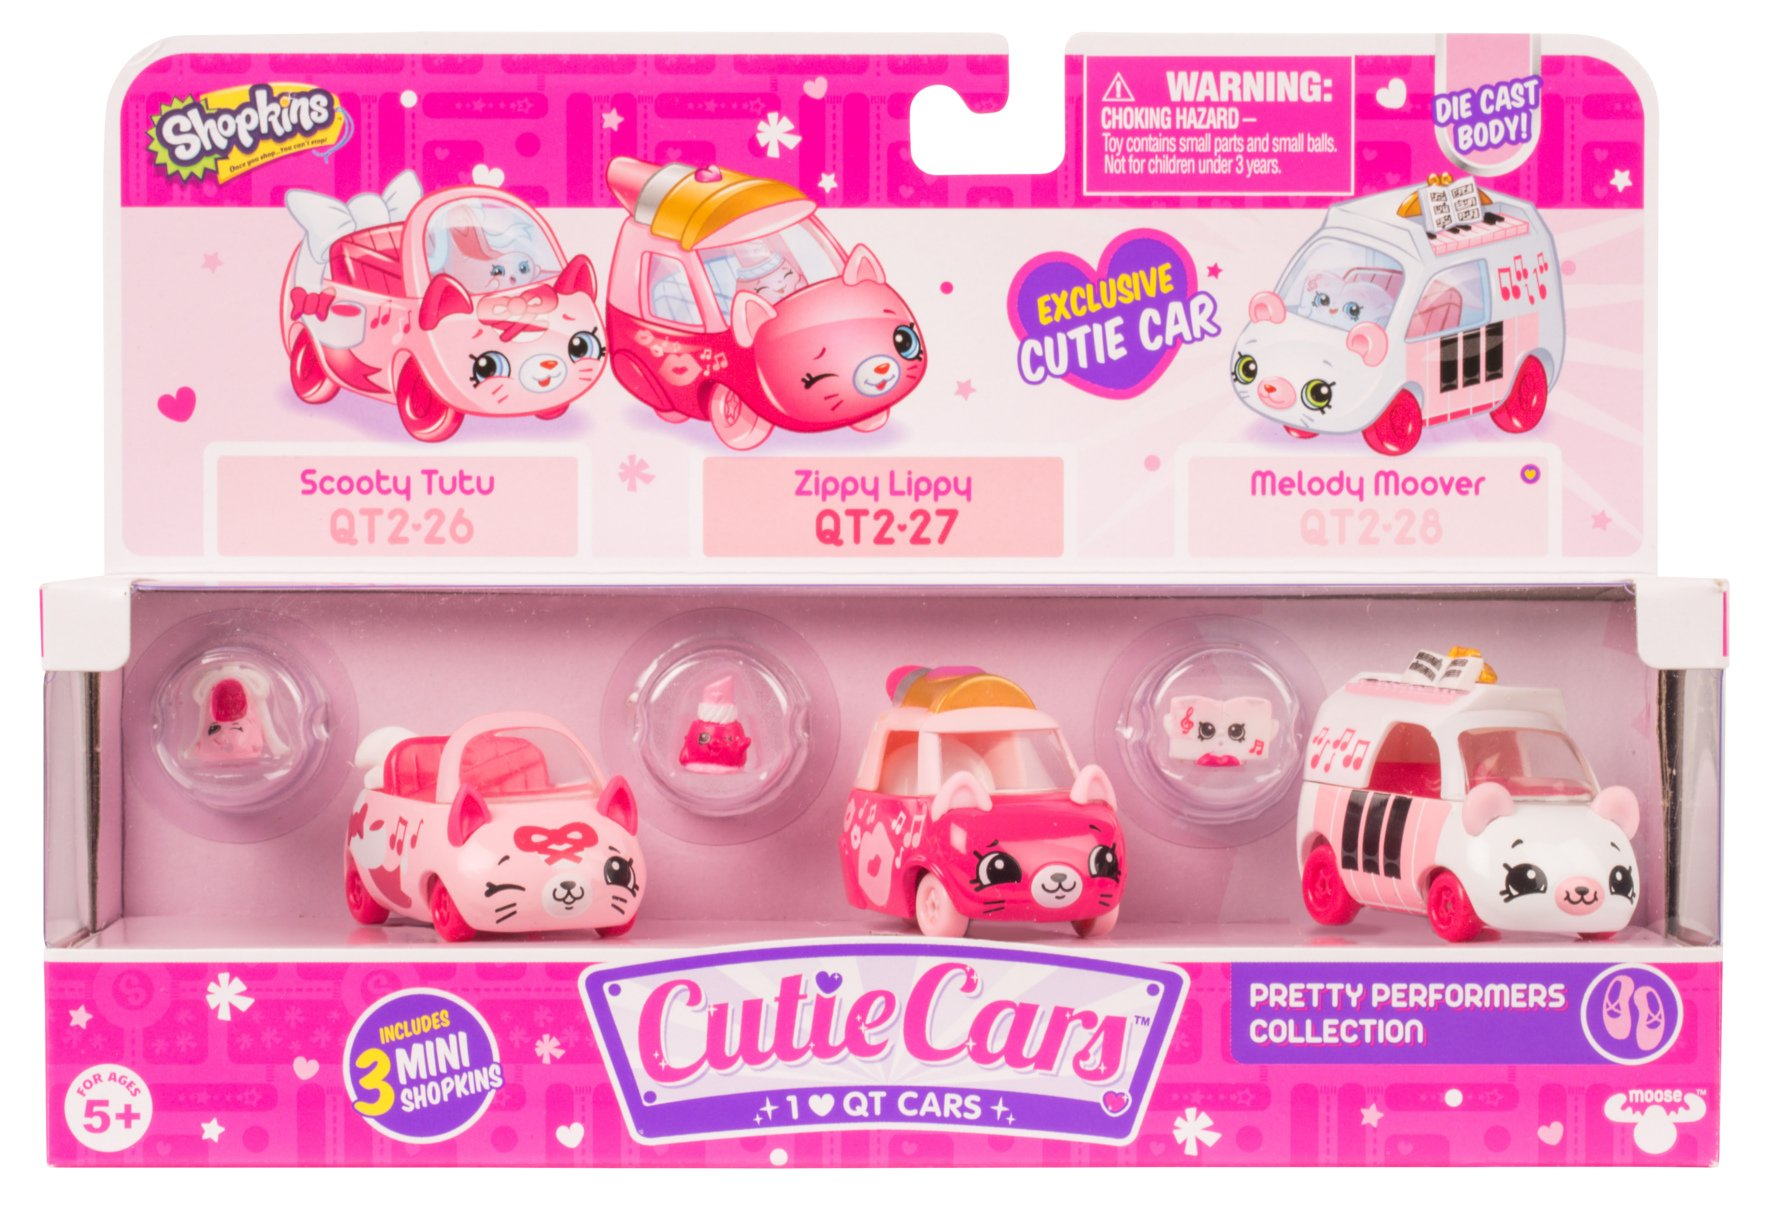 Shopkins Cutie Cars Three Pack - Pretty Performers Collection